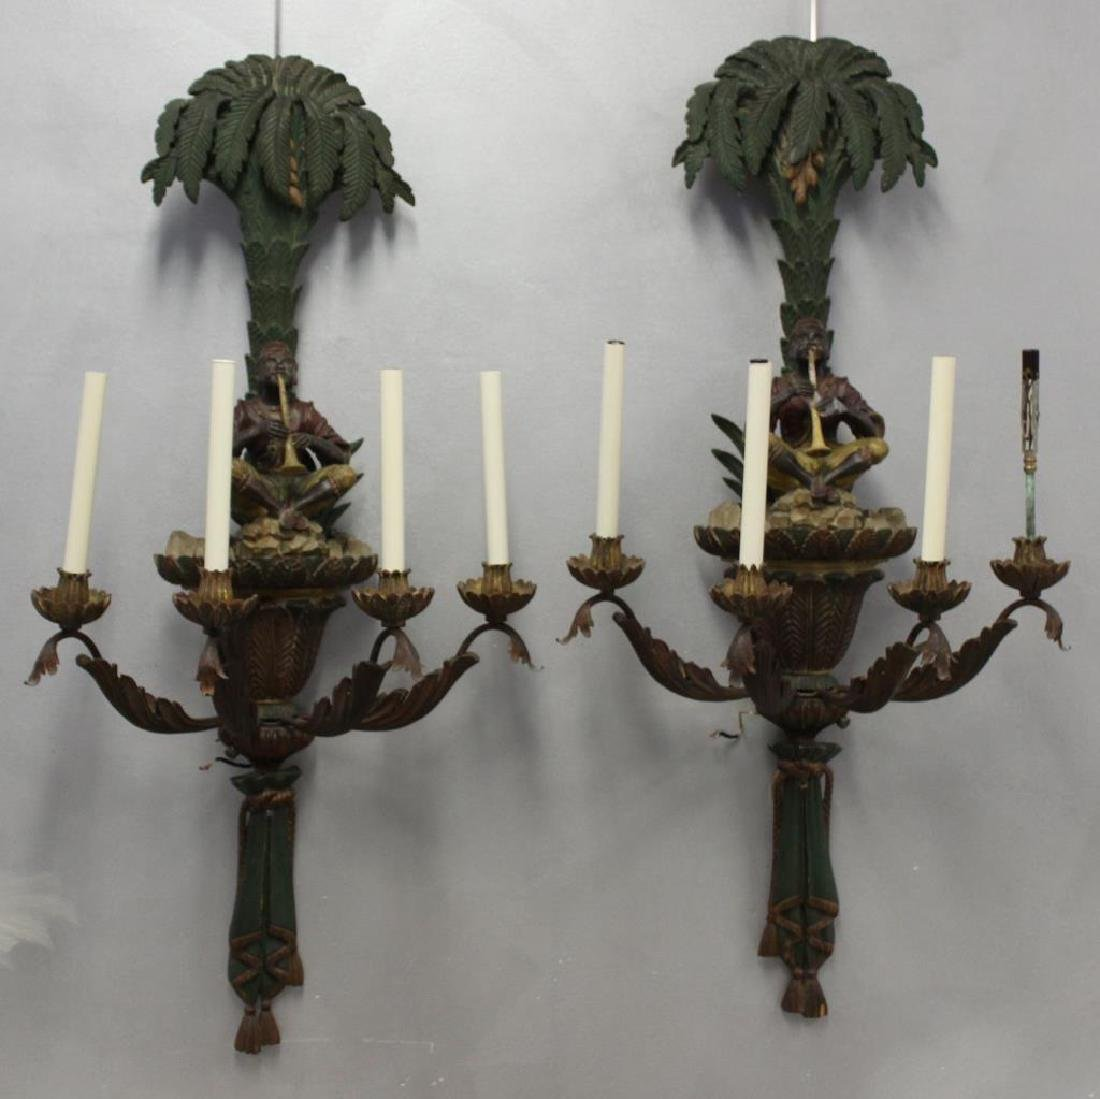 Magnificent Pair of Carved Wood Palm Tree Form